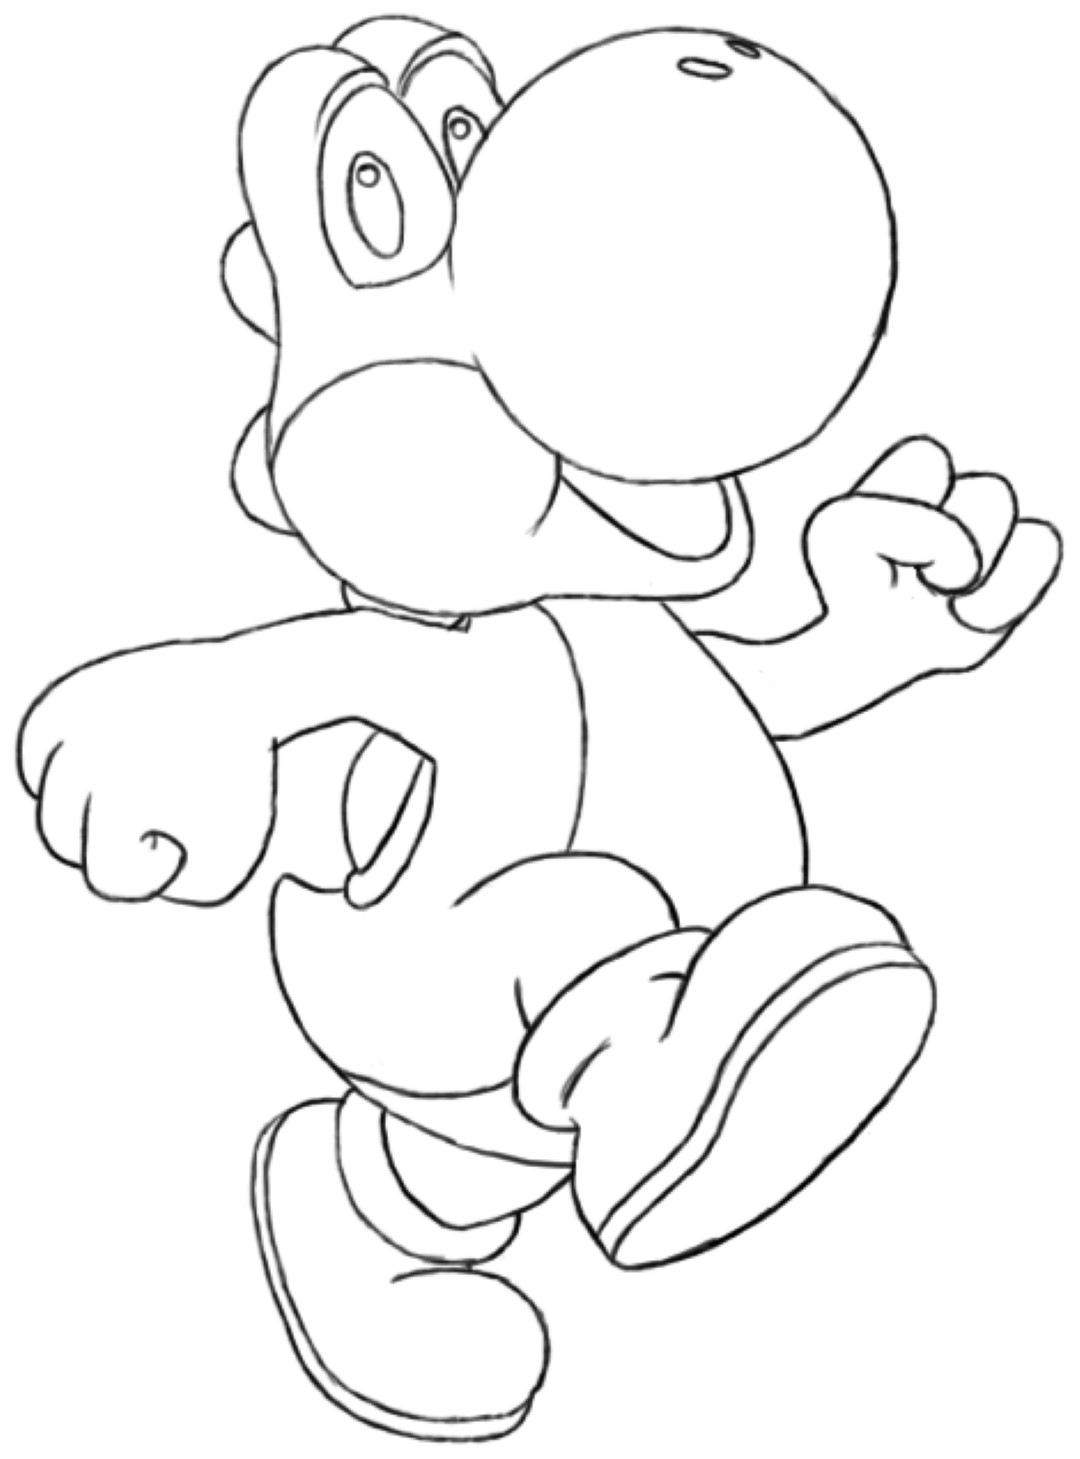 Coloring Pages For Yoshi : Free how to draw yoshi coloring pages